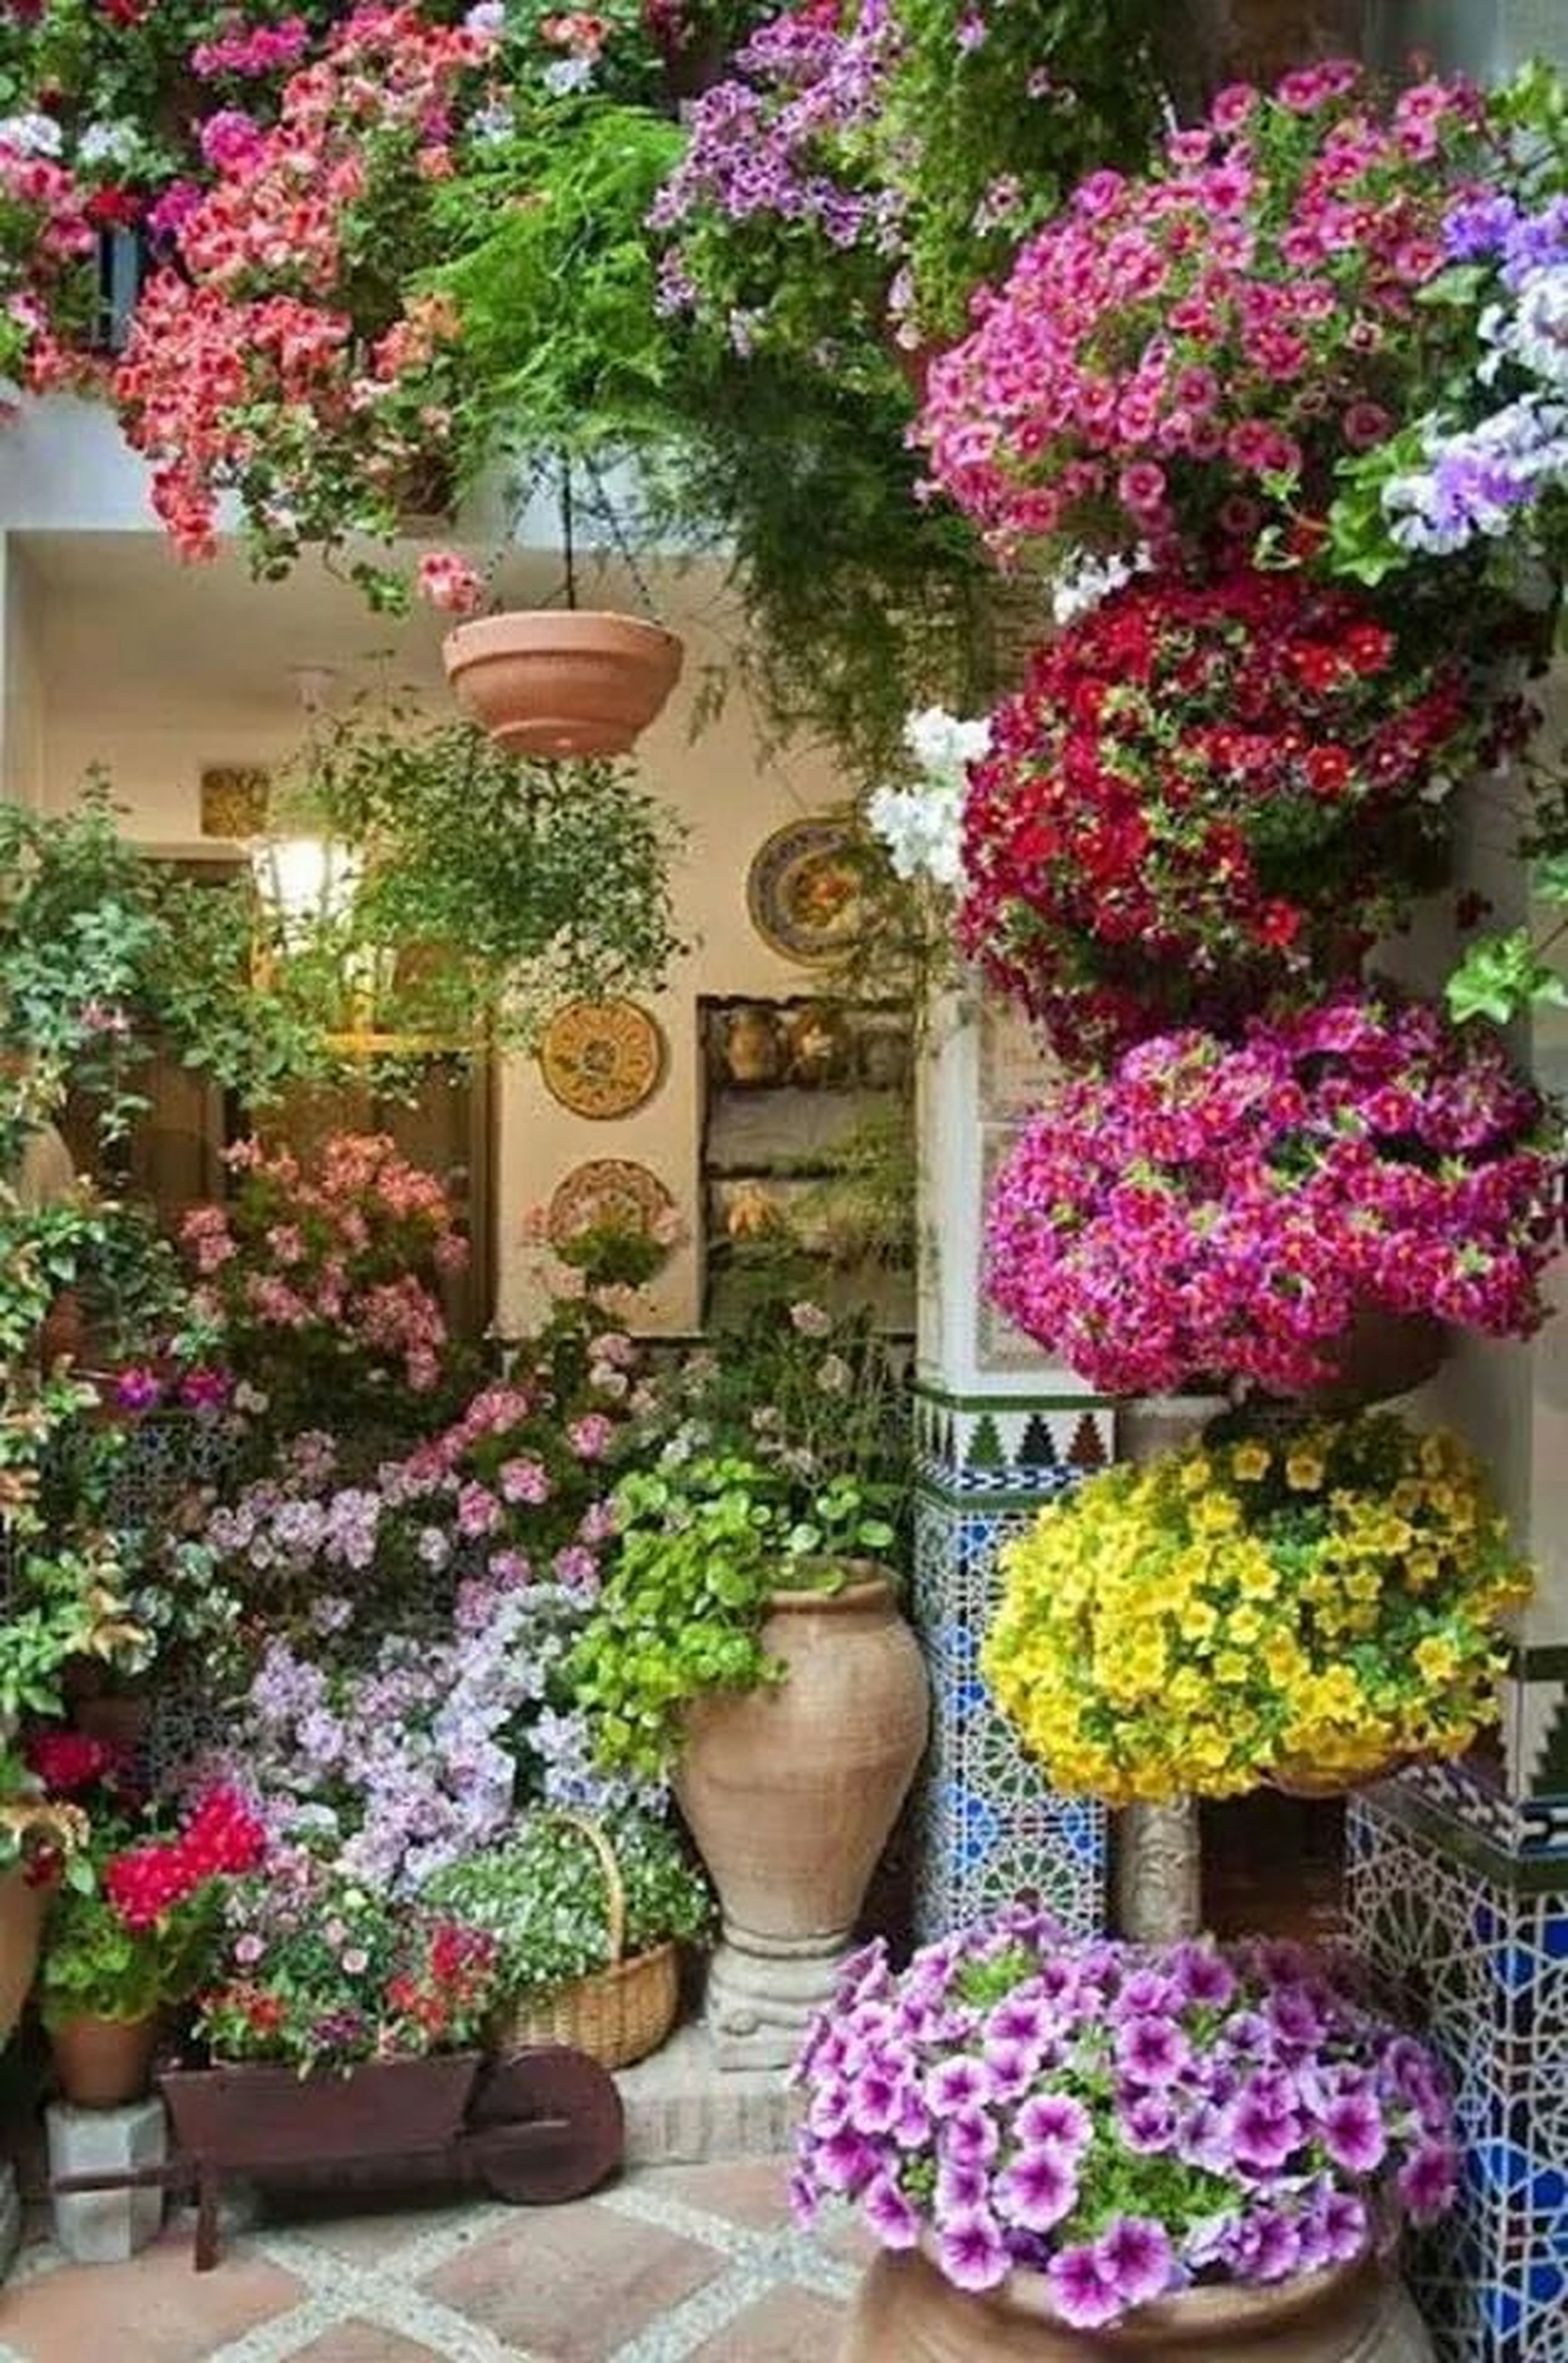 flower, freshness, plant, growth, fragility, potted plant, abundance, beauty in nature, multi colored, variation, nature, for sale, choice, bouquet, petal, pink color, in bloom, retail, purple, blossom